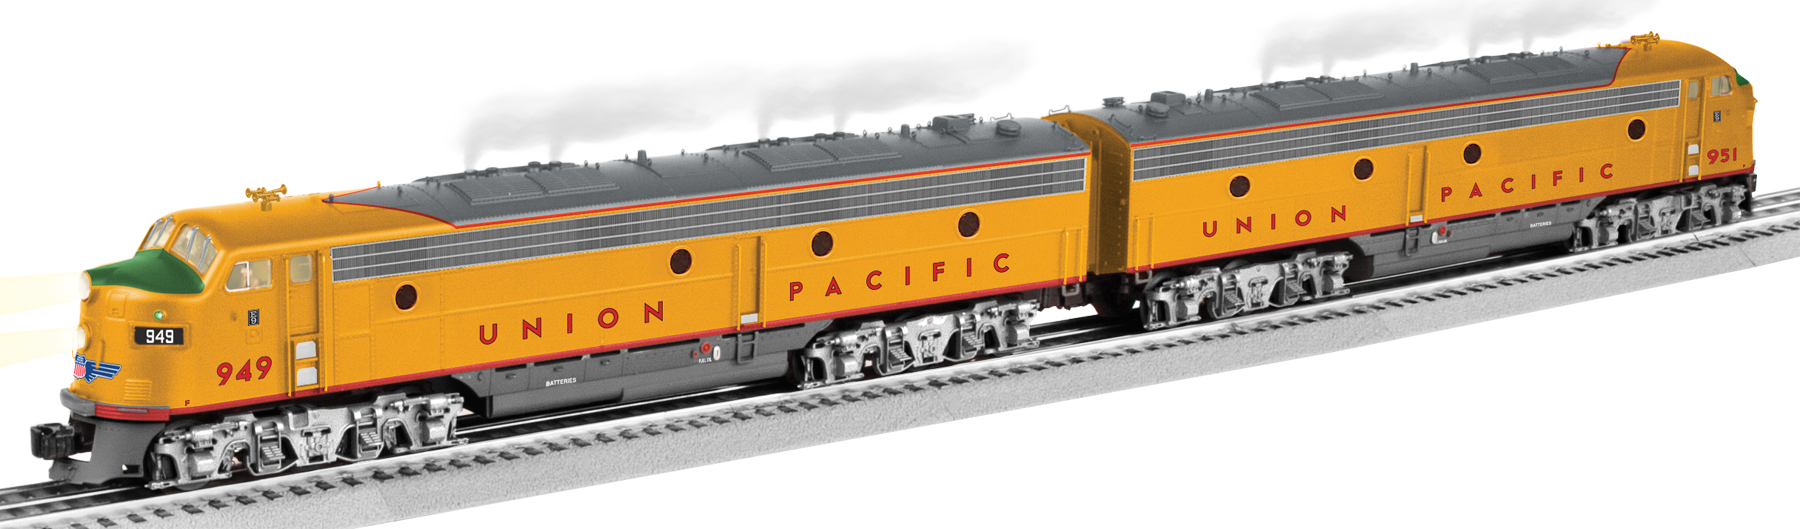 Lionel locomotive